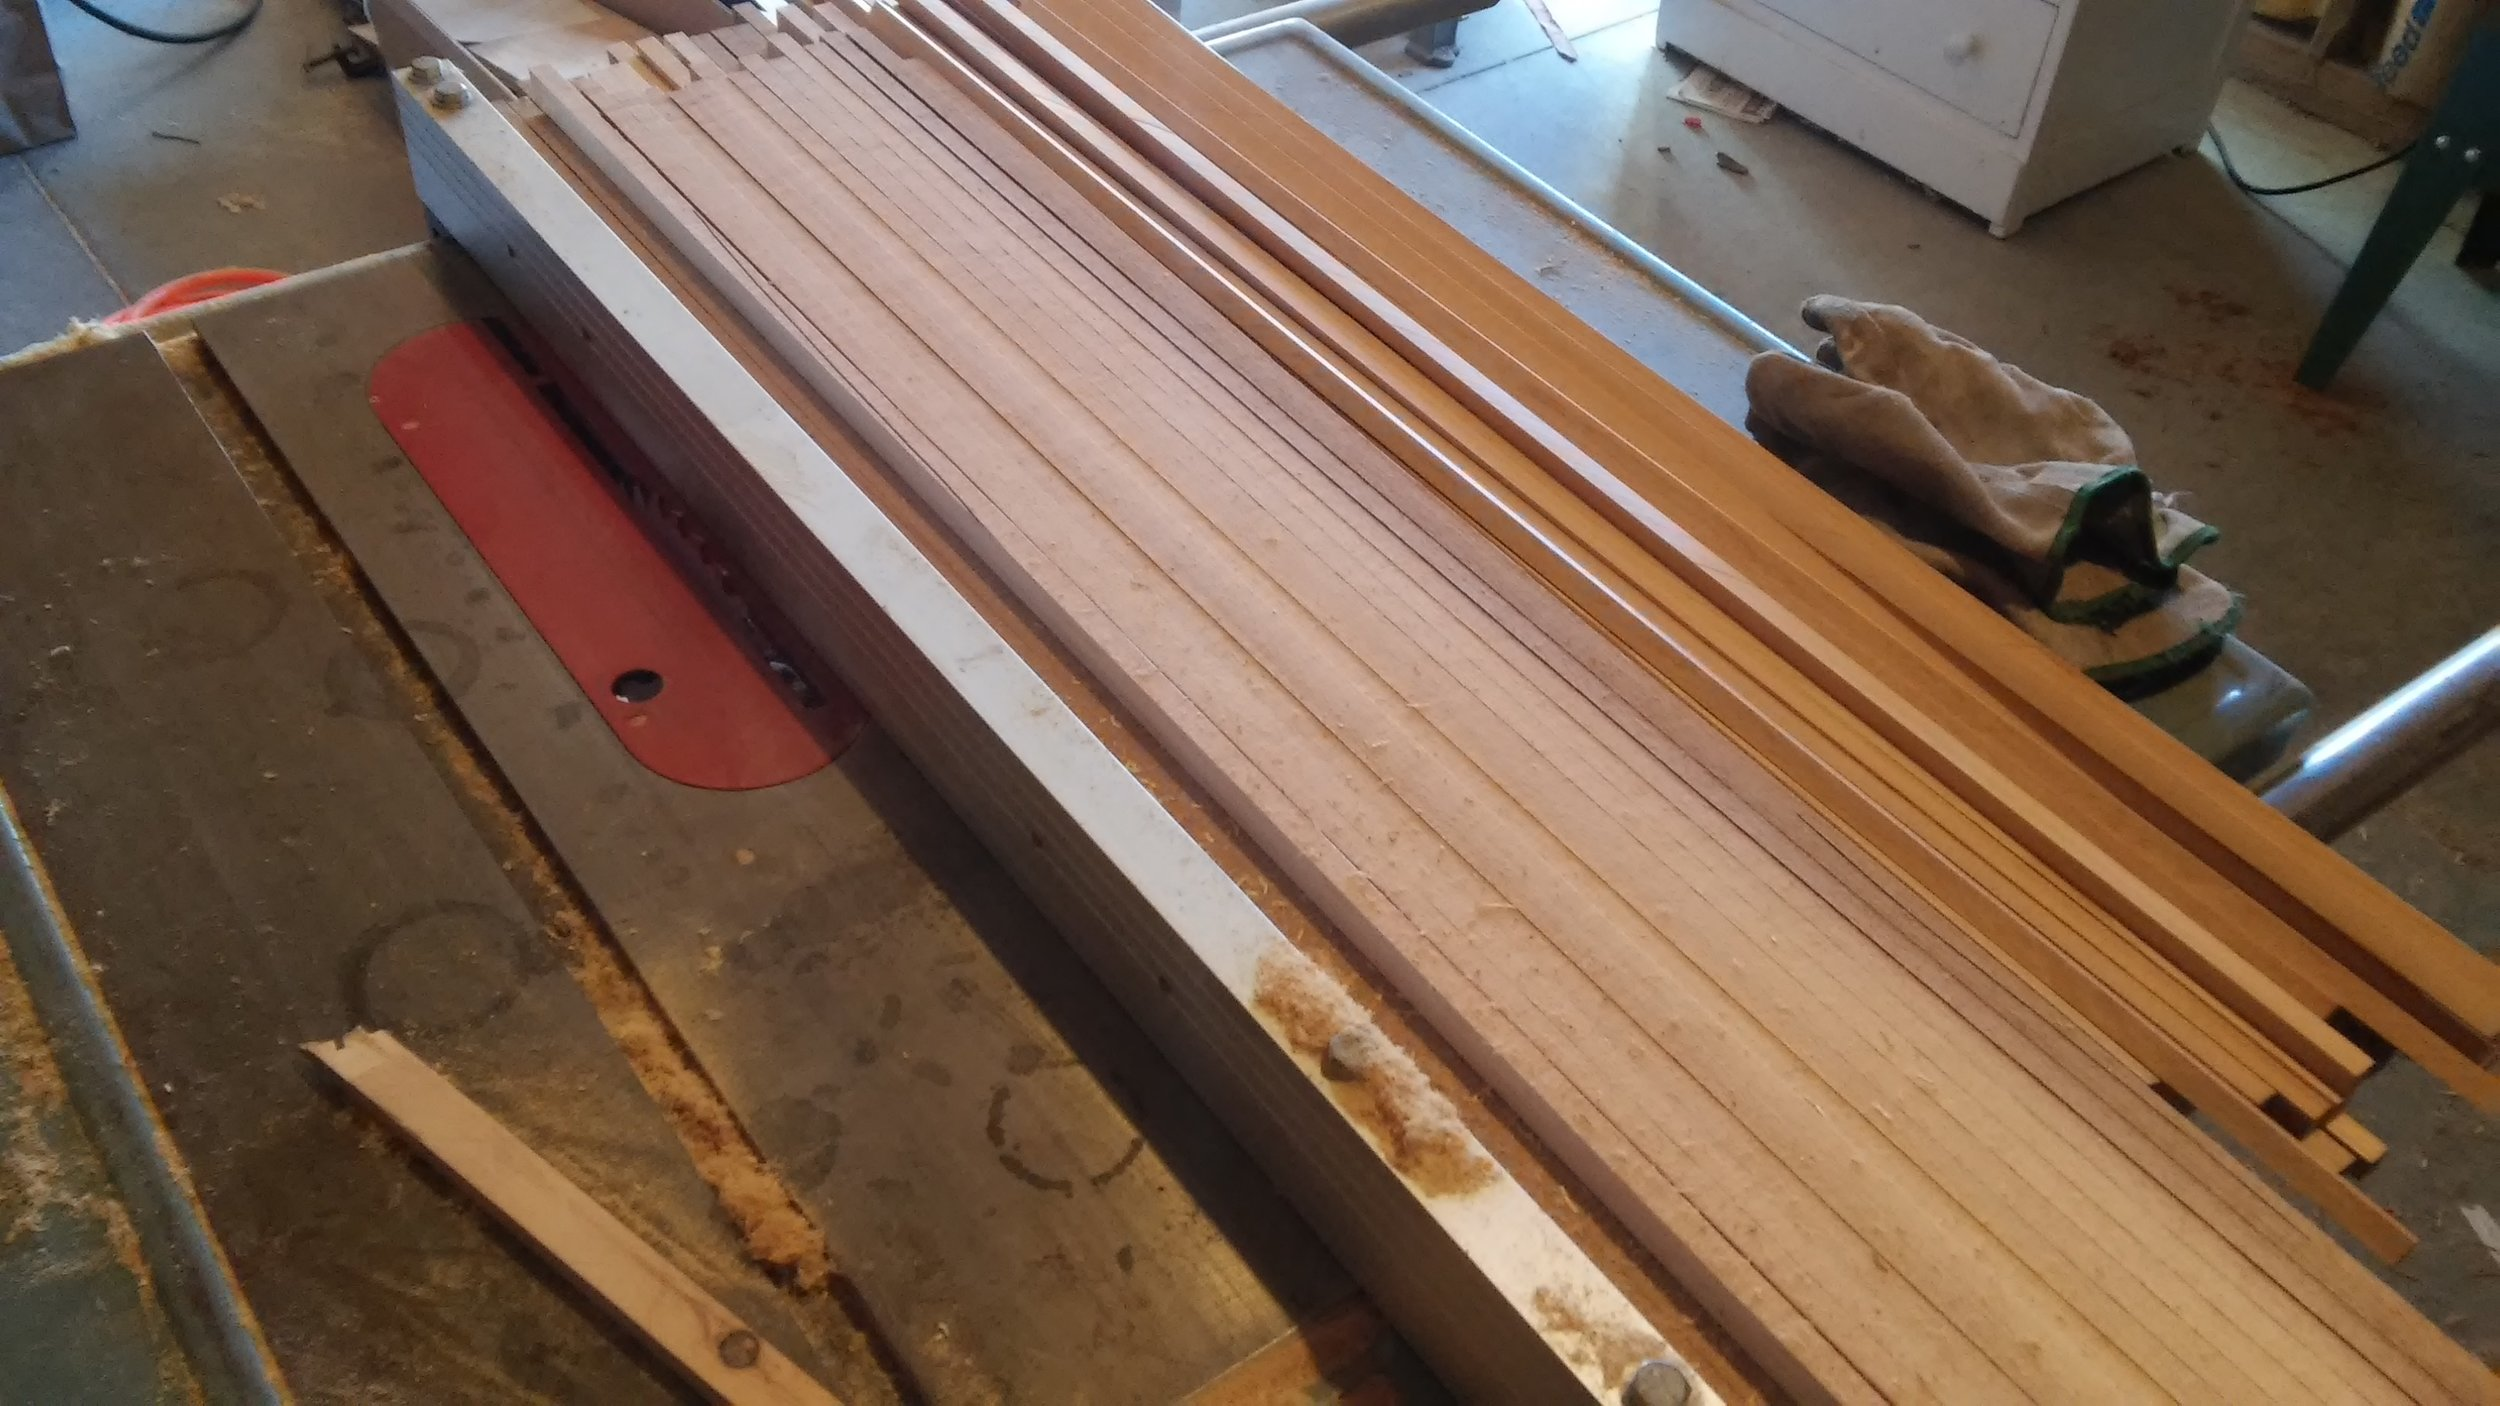 Sawing blanks on the table saw